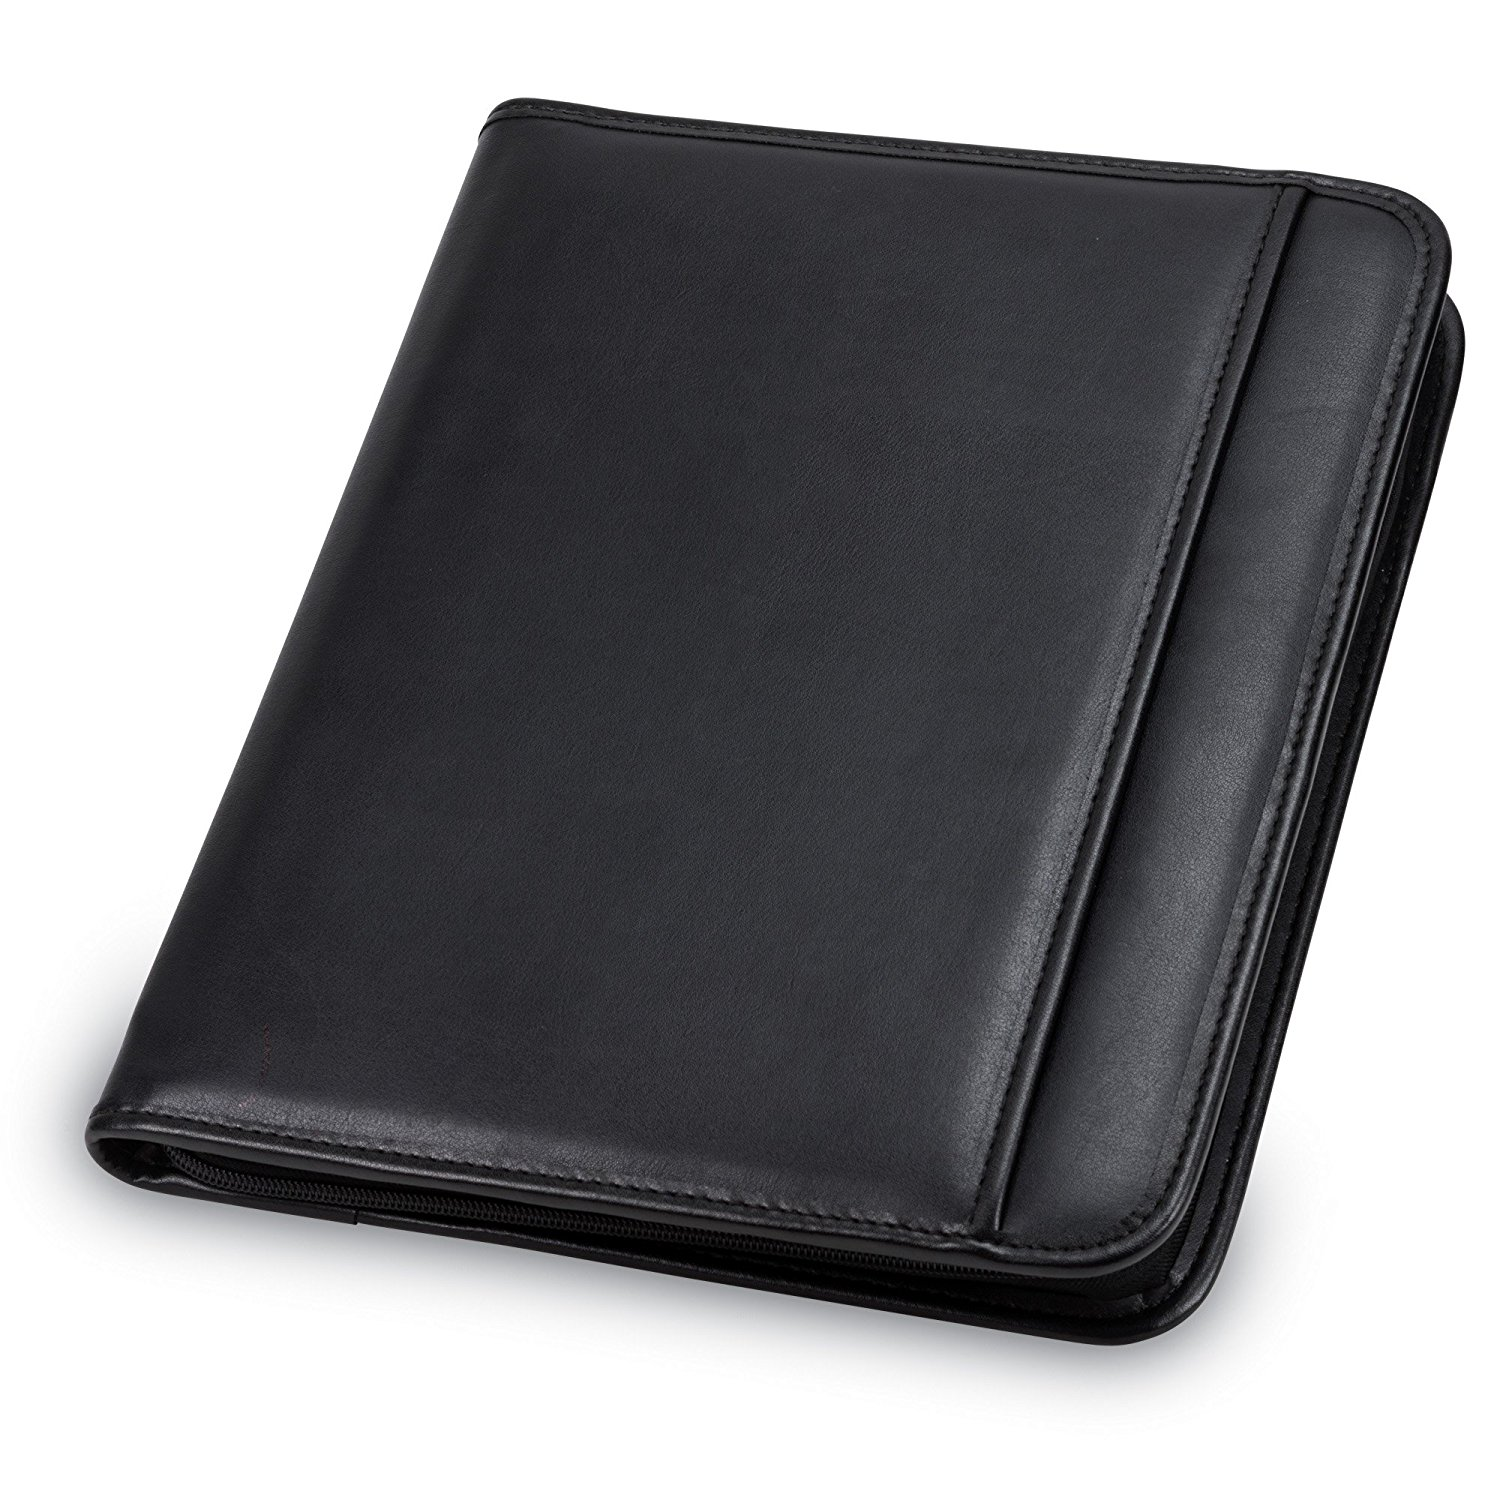 Samsill Document Organizer & Professional Padfolio – Available in 2 Sizes